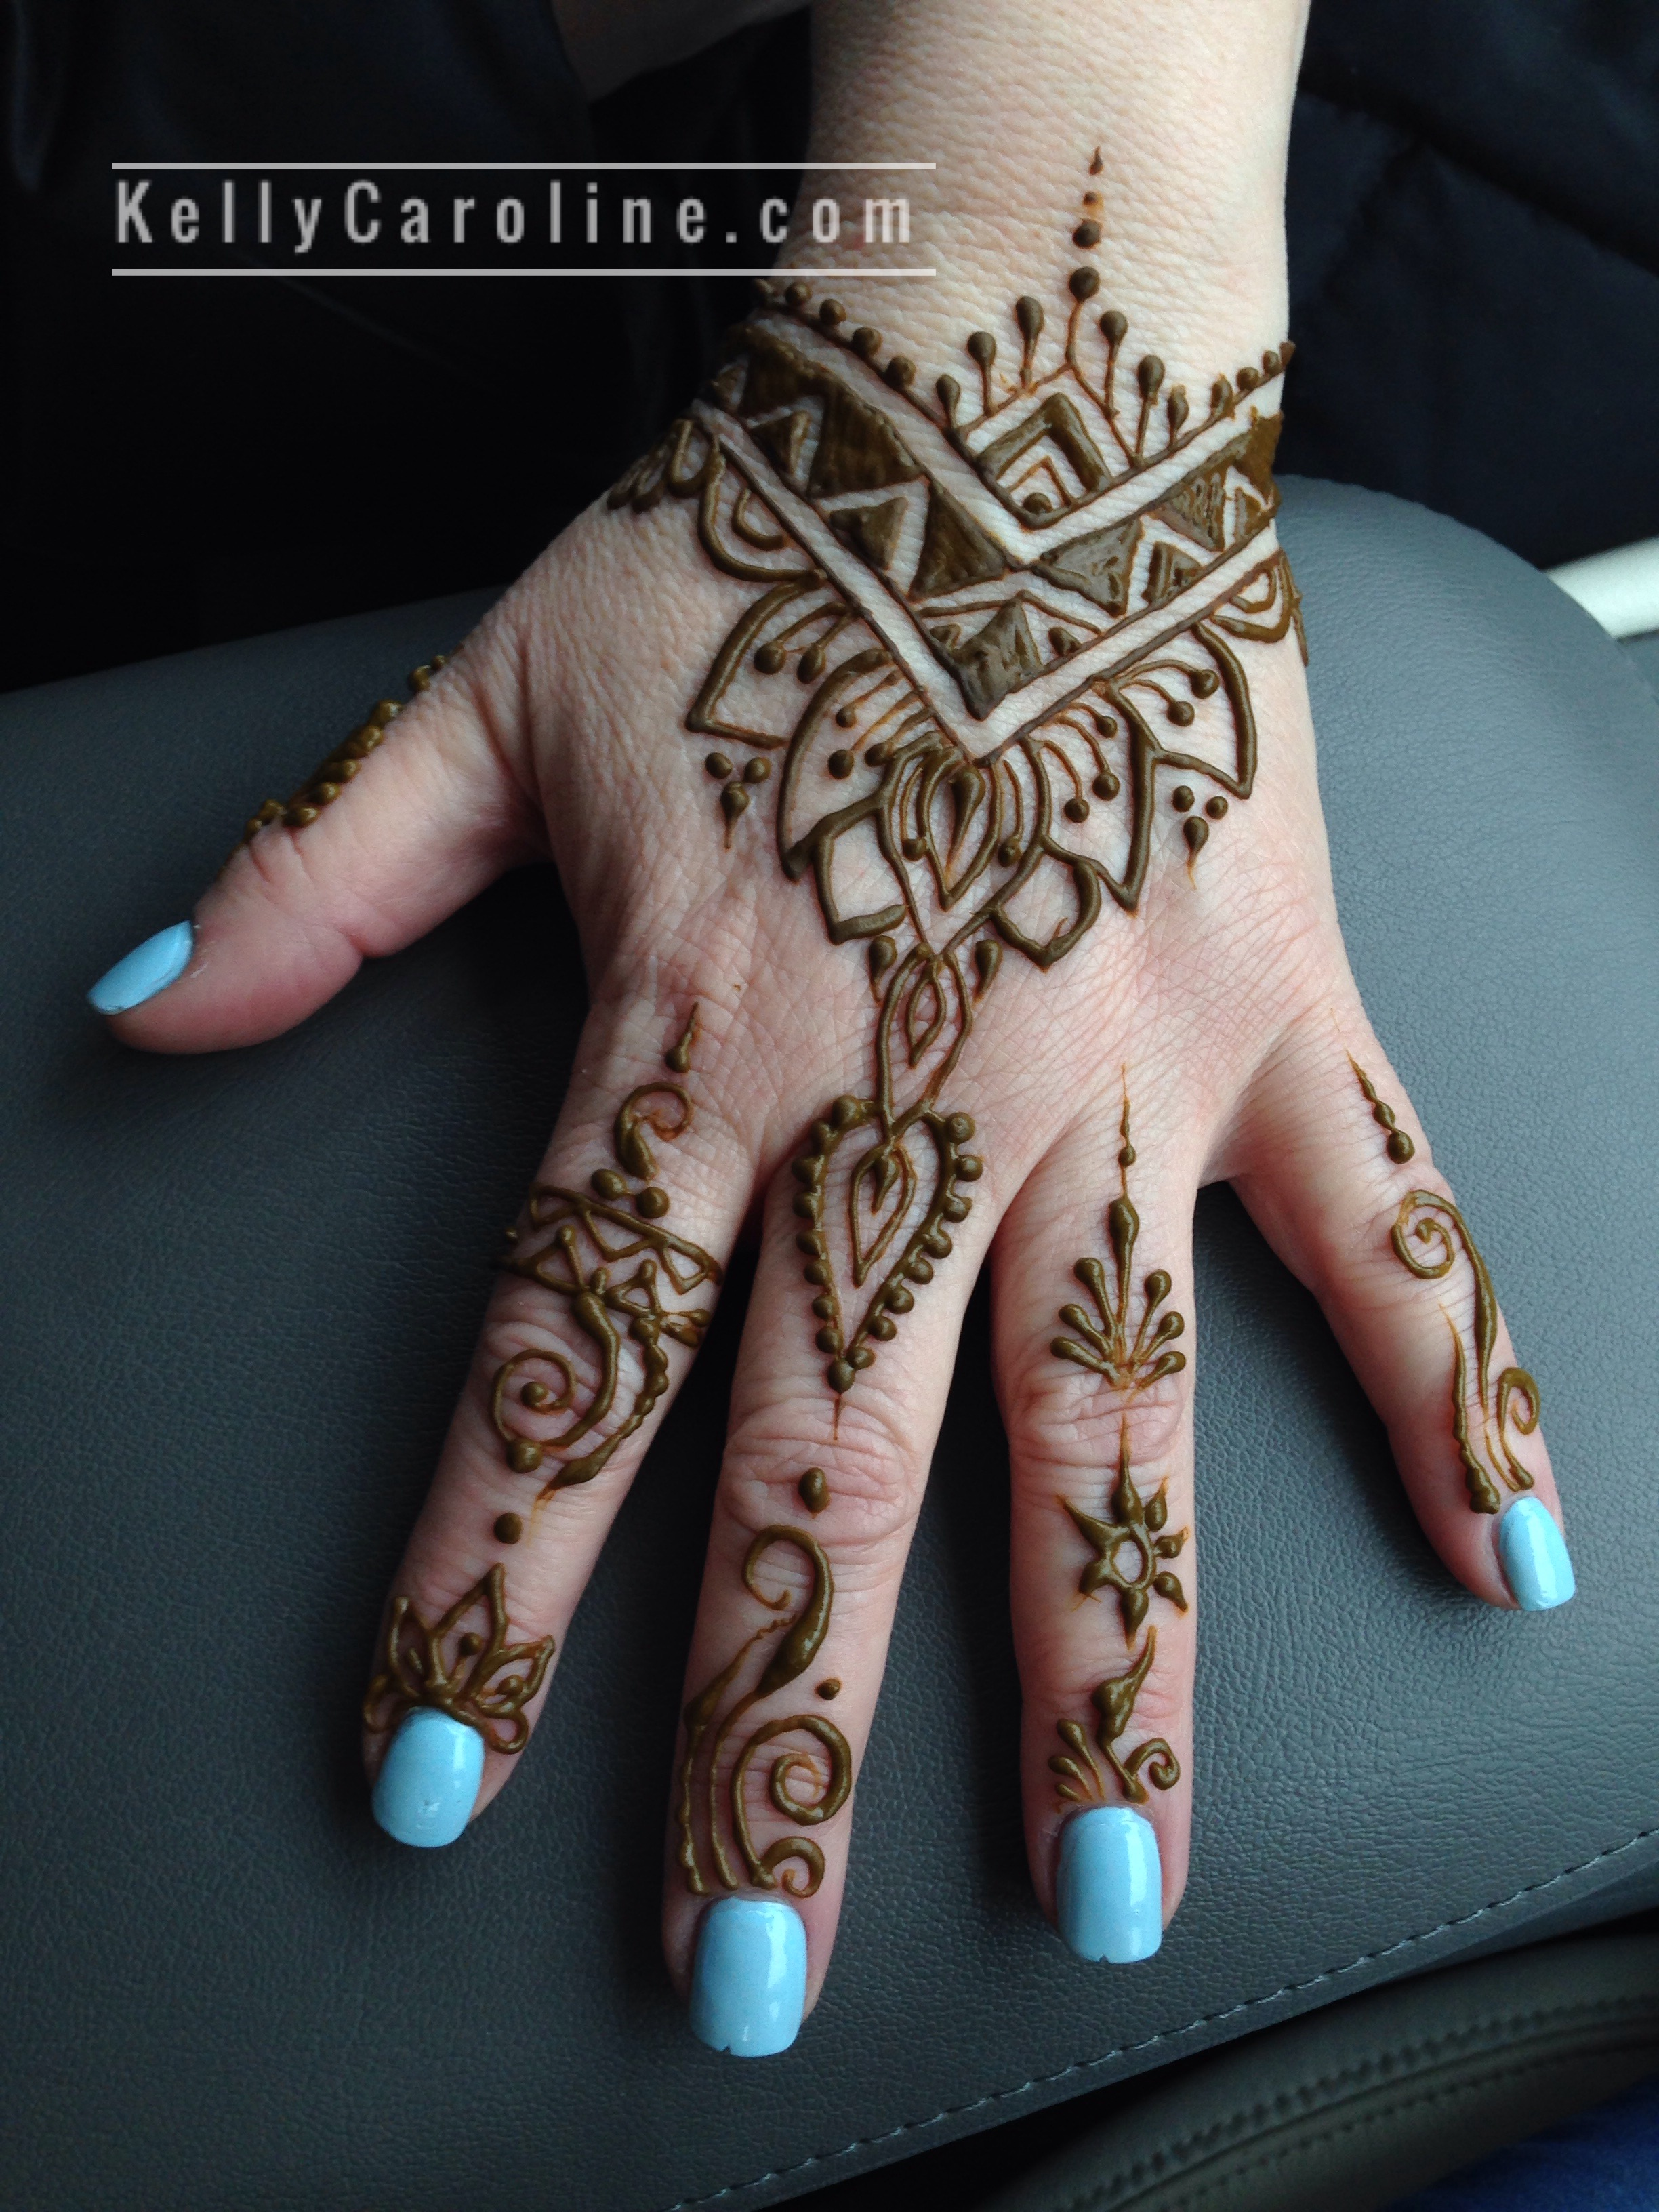 0dc2e4c81 Tribal and geometric henna tattoos are really popular this Spring like the  one we did here for the hand . This was at our henna studio in Ypsilanti,  ...